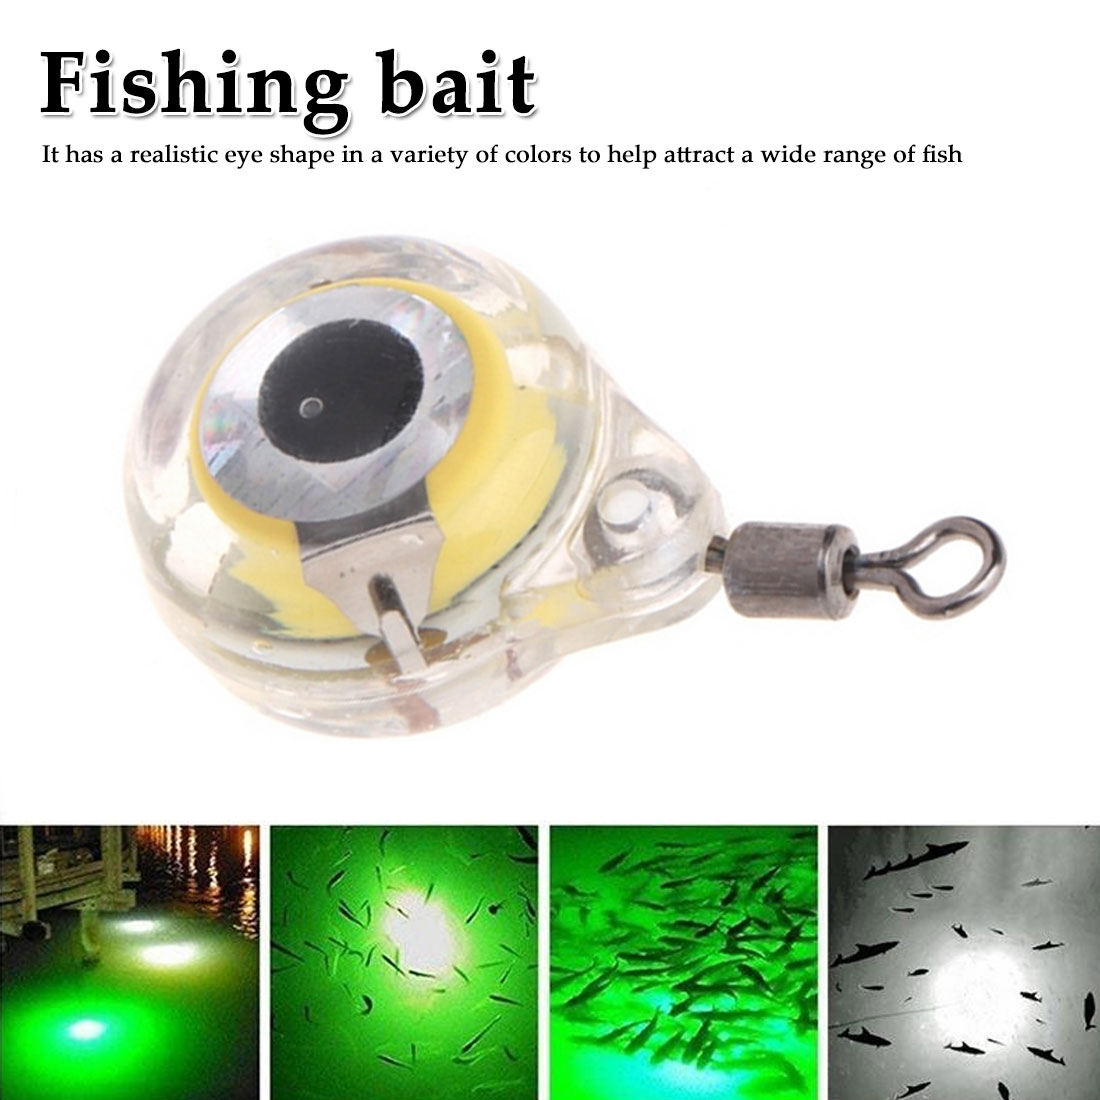 5 Colors Mini Fishing Light Small Illuminating 6 Cm/2.4 Inch LED Deep Drop Underwater Eye Shape Fishing Squid Fishing Bait